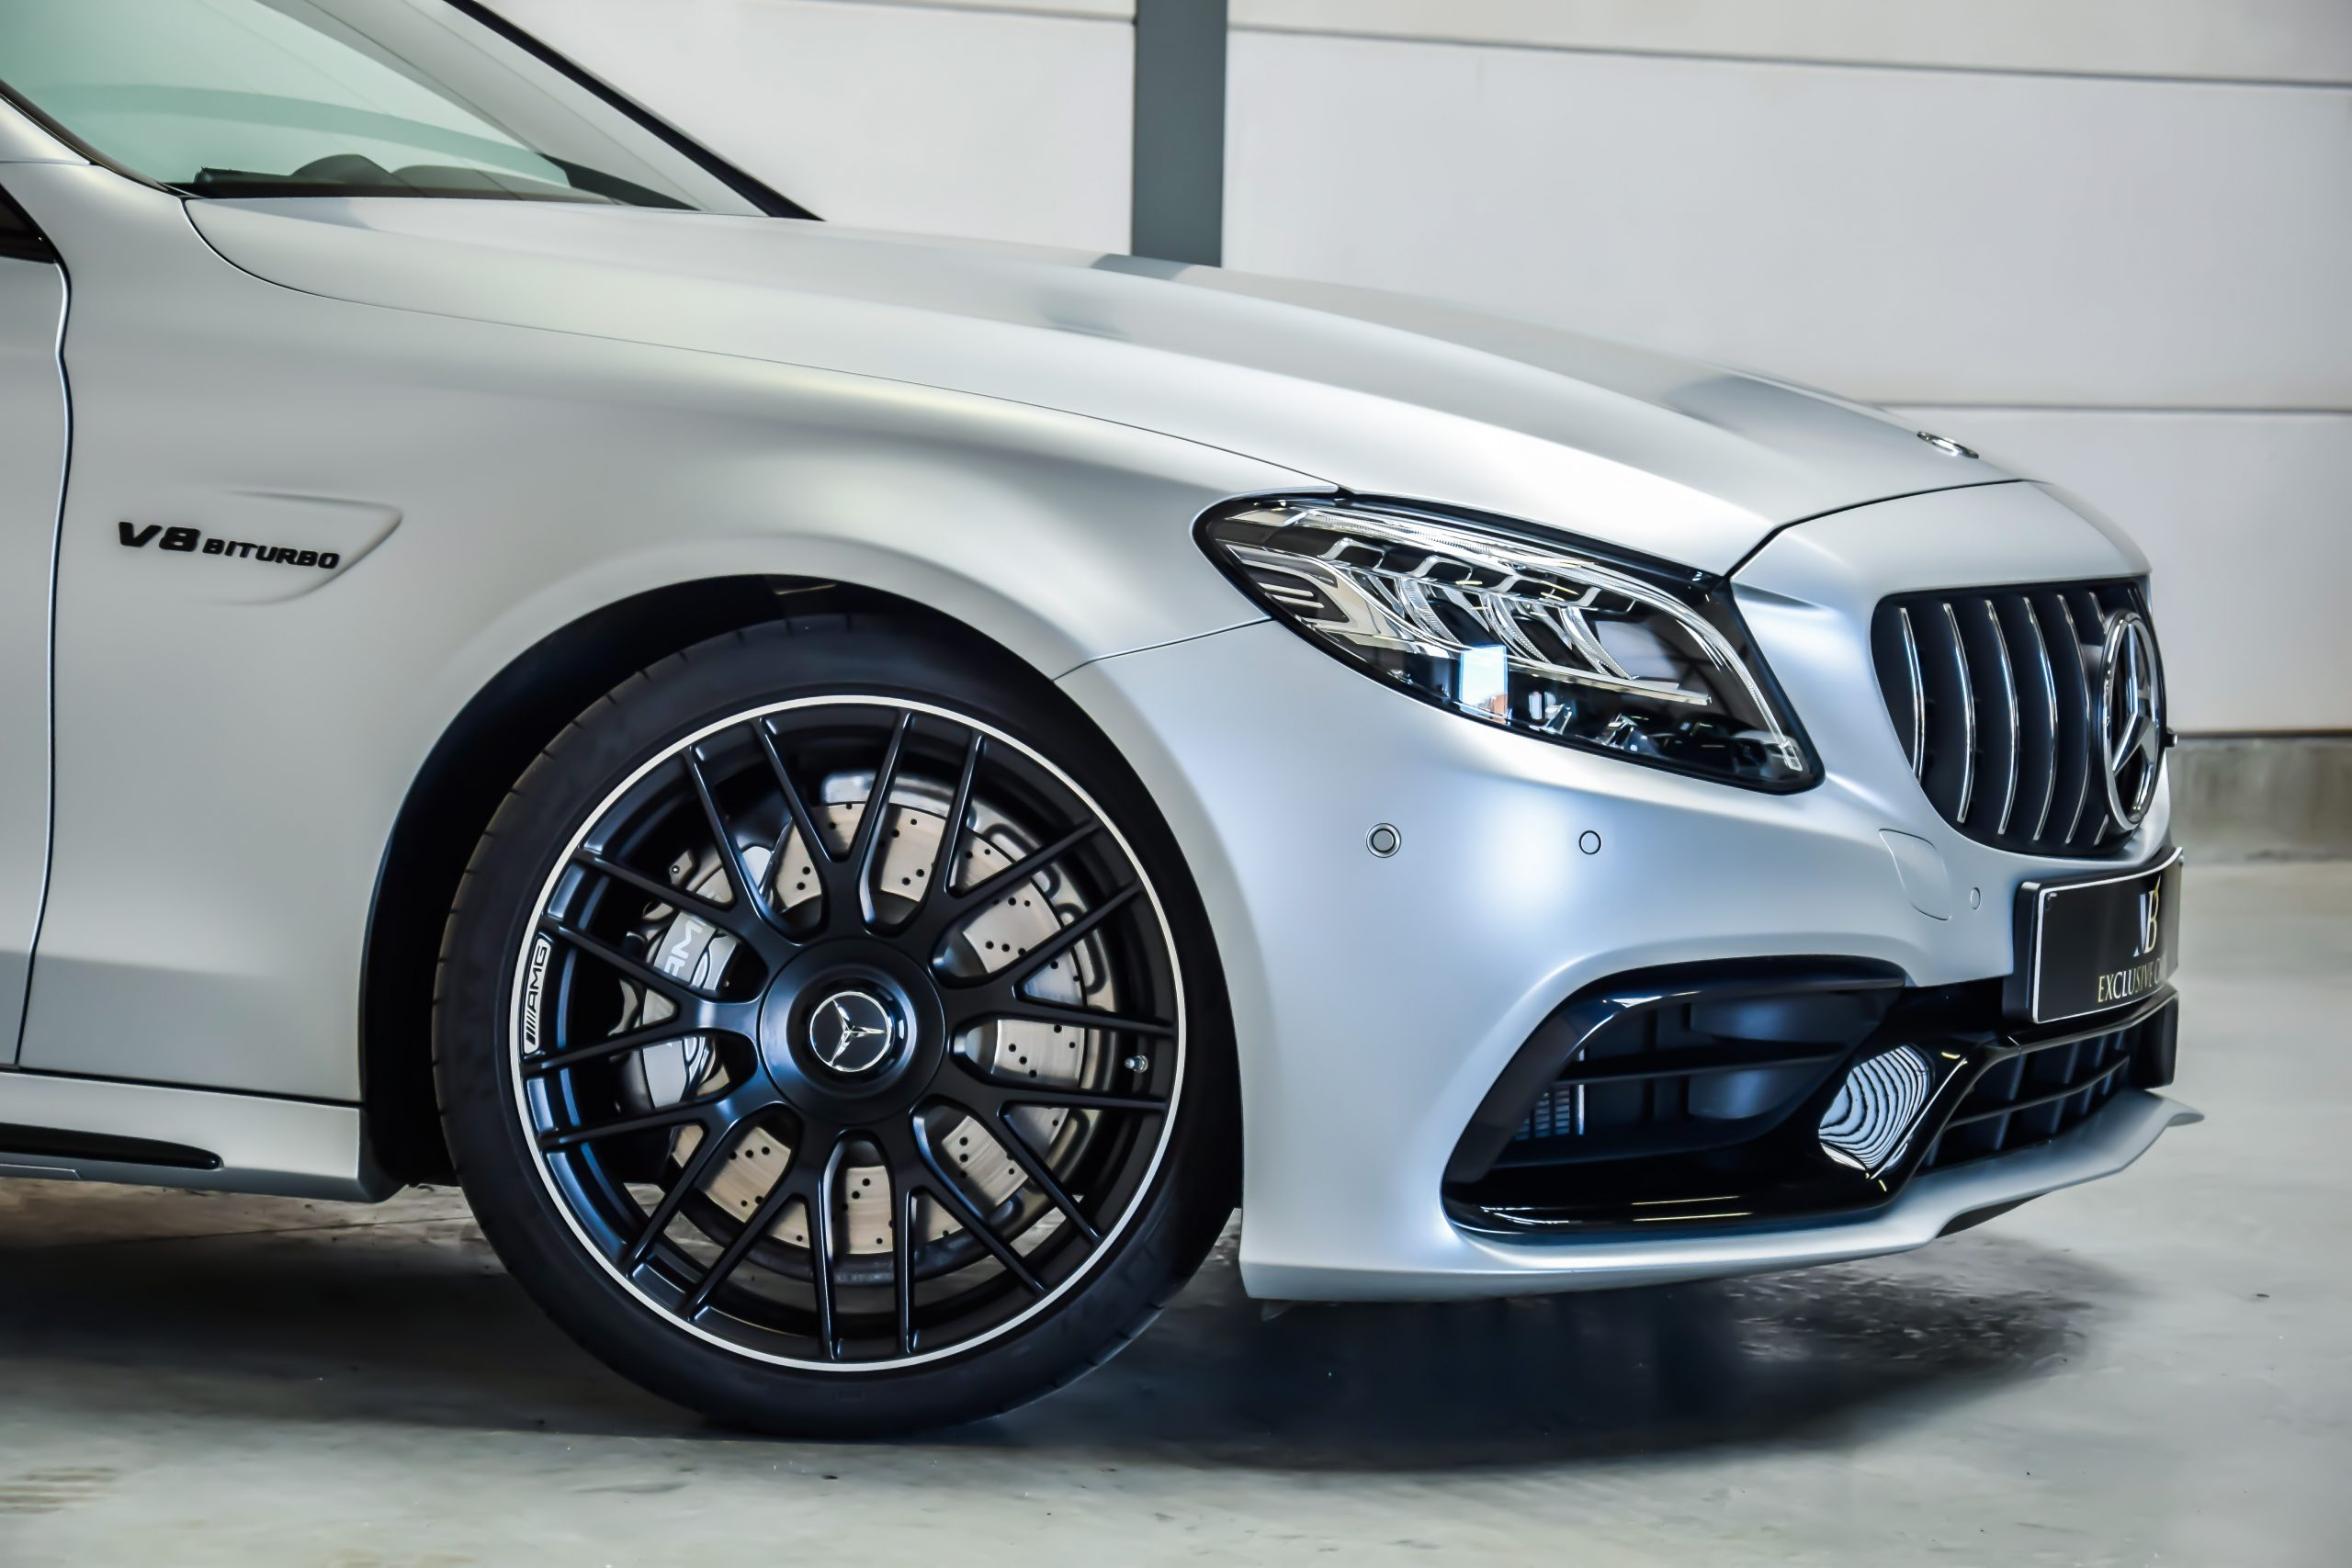 Mercedes-Benz C63 AMG 11/2019 – Frozen Silver – Full Option!!